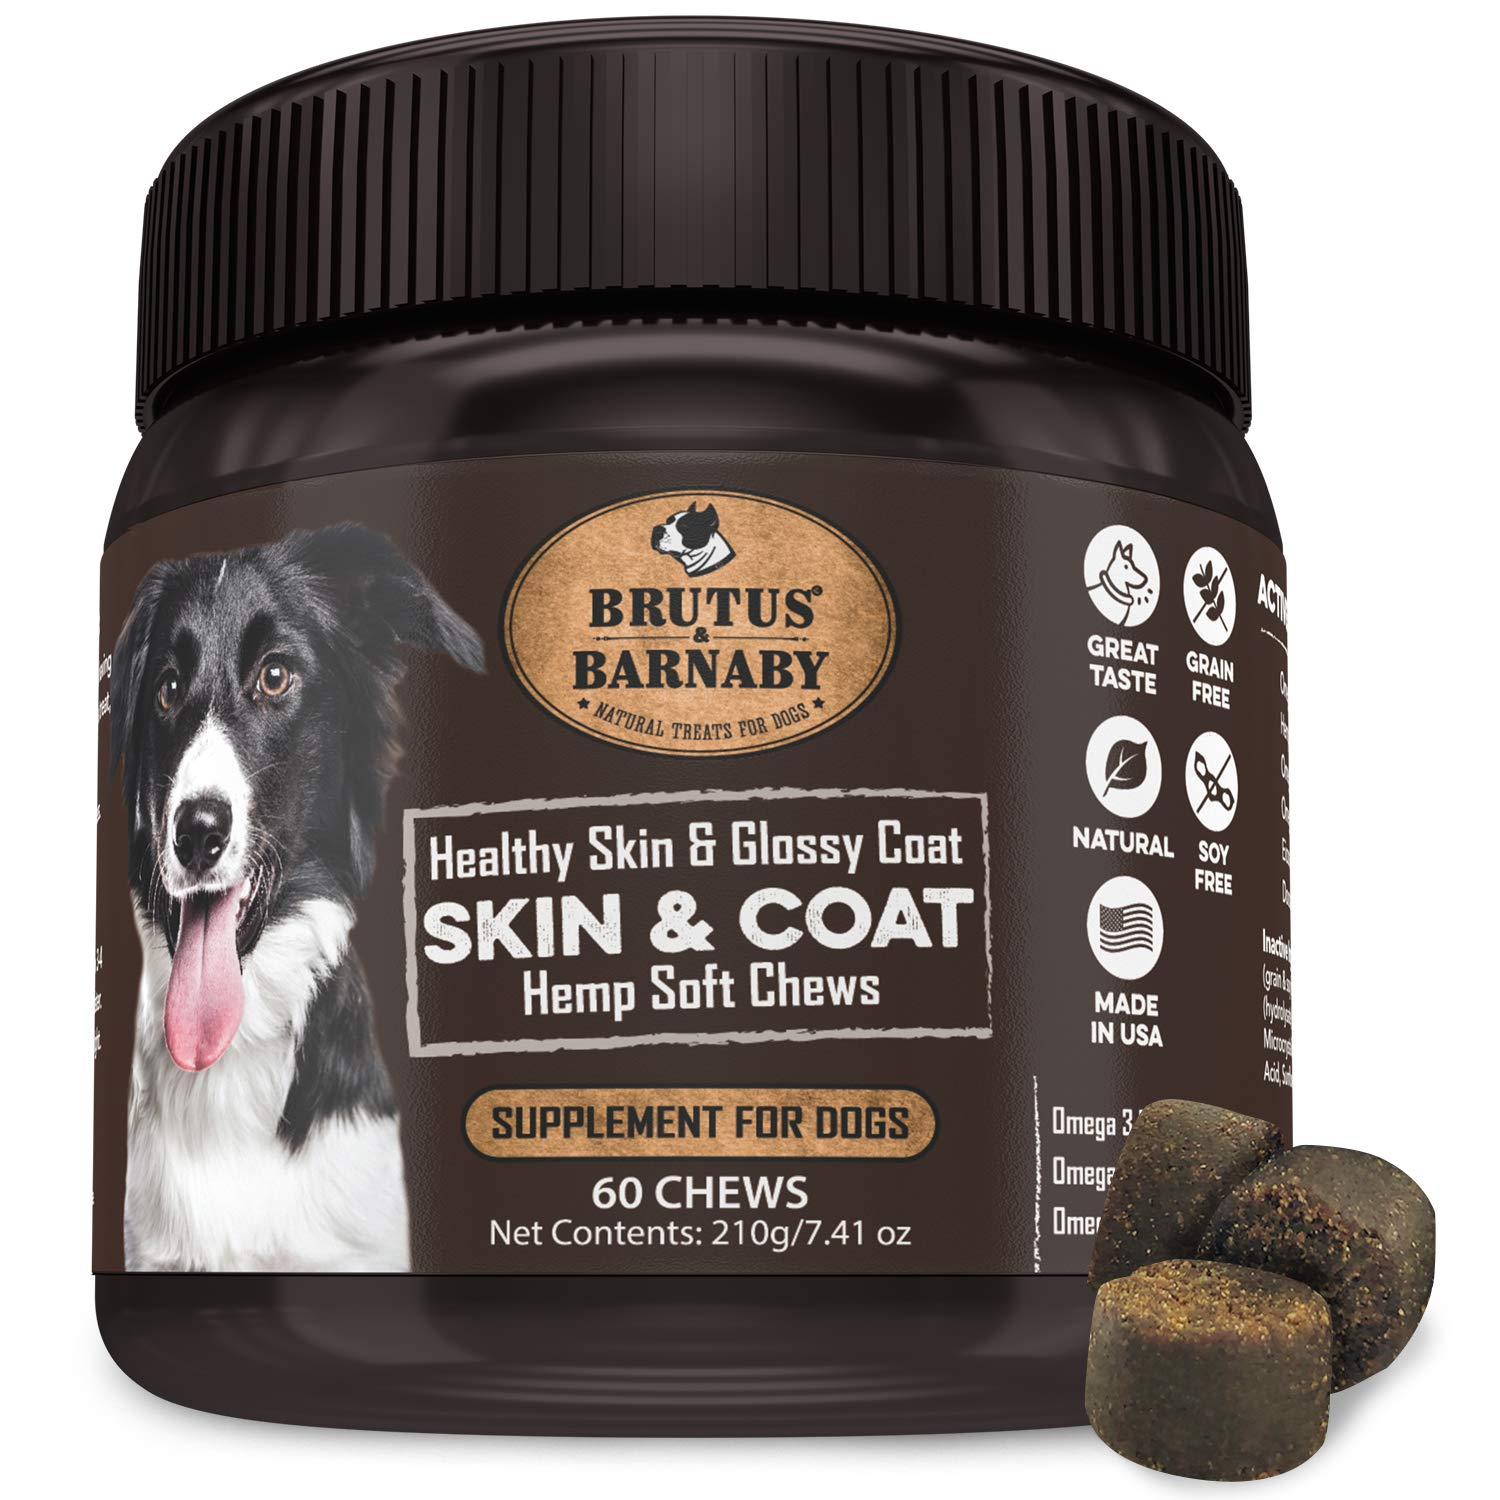 Omega 3 Fish Oil for Dogs - Easy to Deliver Skin and Coat Soft Chew, Organic Hemp, Coconut Oil, EPA,DHA ; Dog Skin Allergy Treatment for Itch-Free Skin, Increases Shiny Coat, Vitamin C & E by BRUTUS & BARNABY